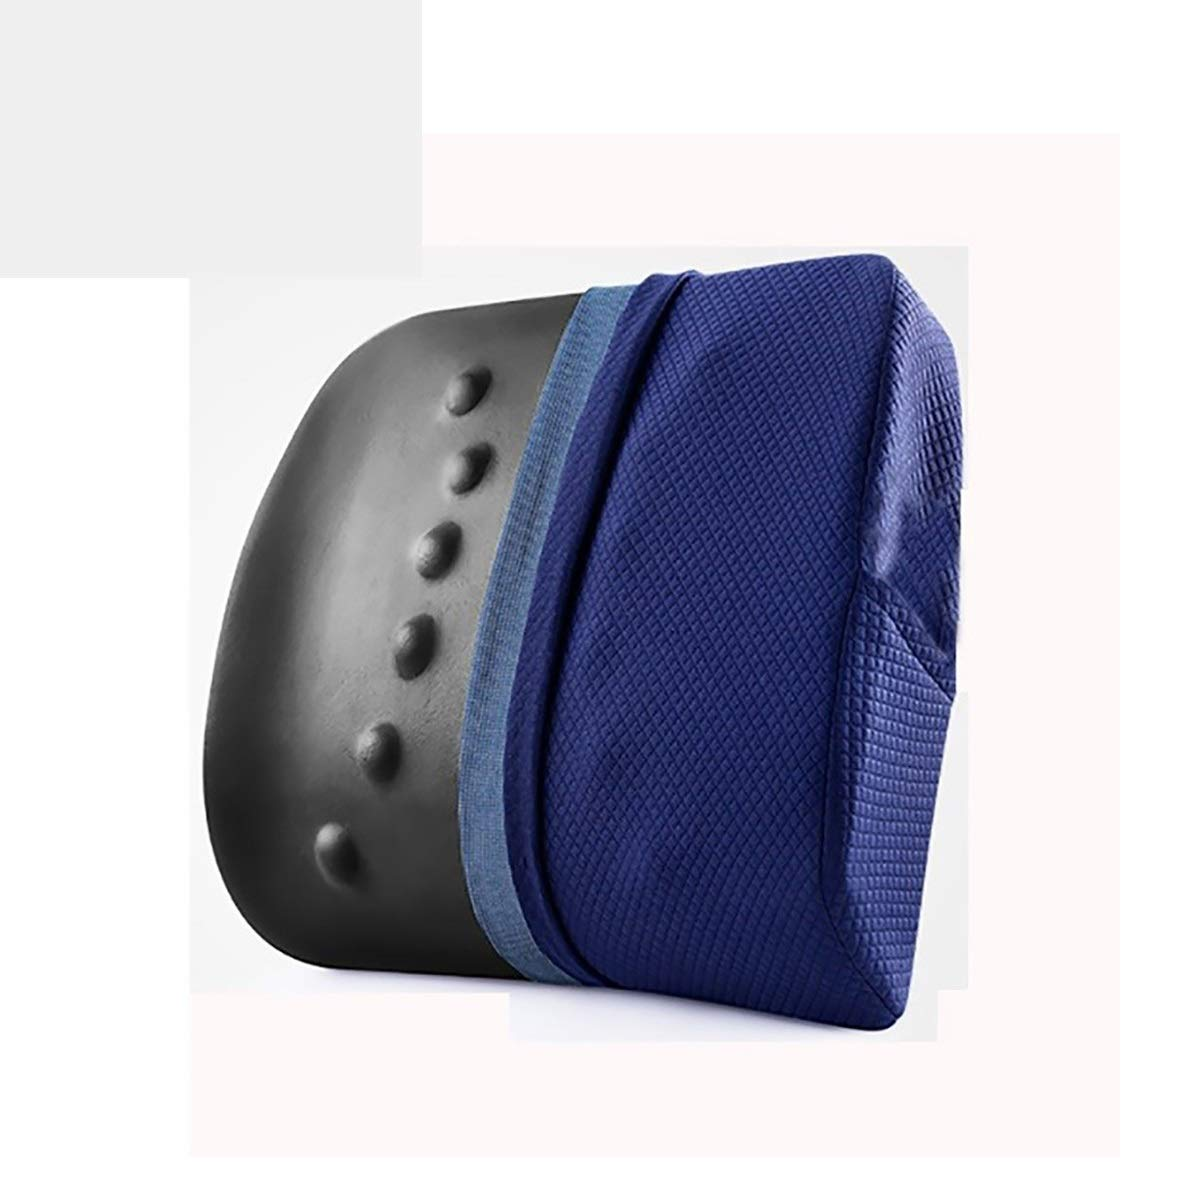 Waist cushion YLIAN Back Cushion Seat Chair Back Support Cushion 120D High Density Bamboo Charcoal Memory Cotton, for Car Home Office Chair,Ergonomics Orthopedic Design (Color : Navy Blue)